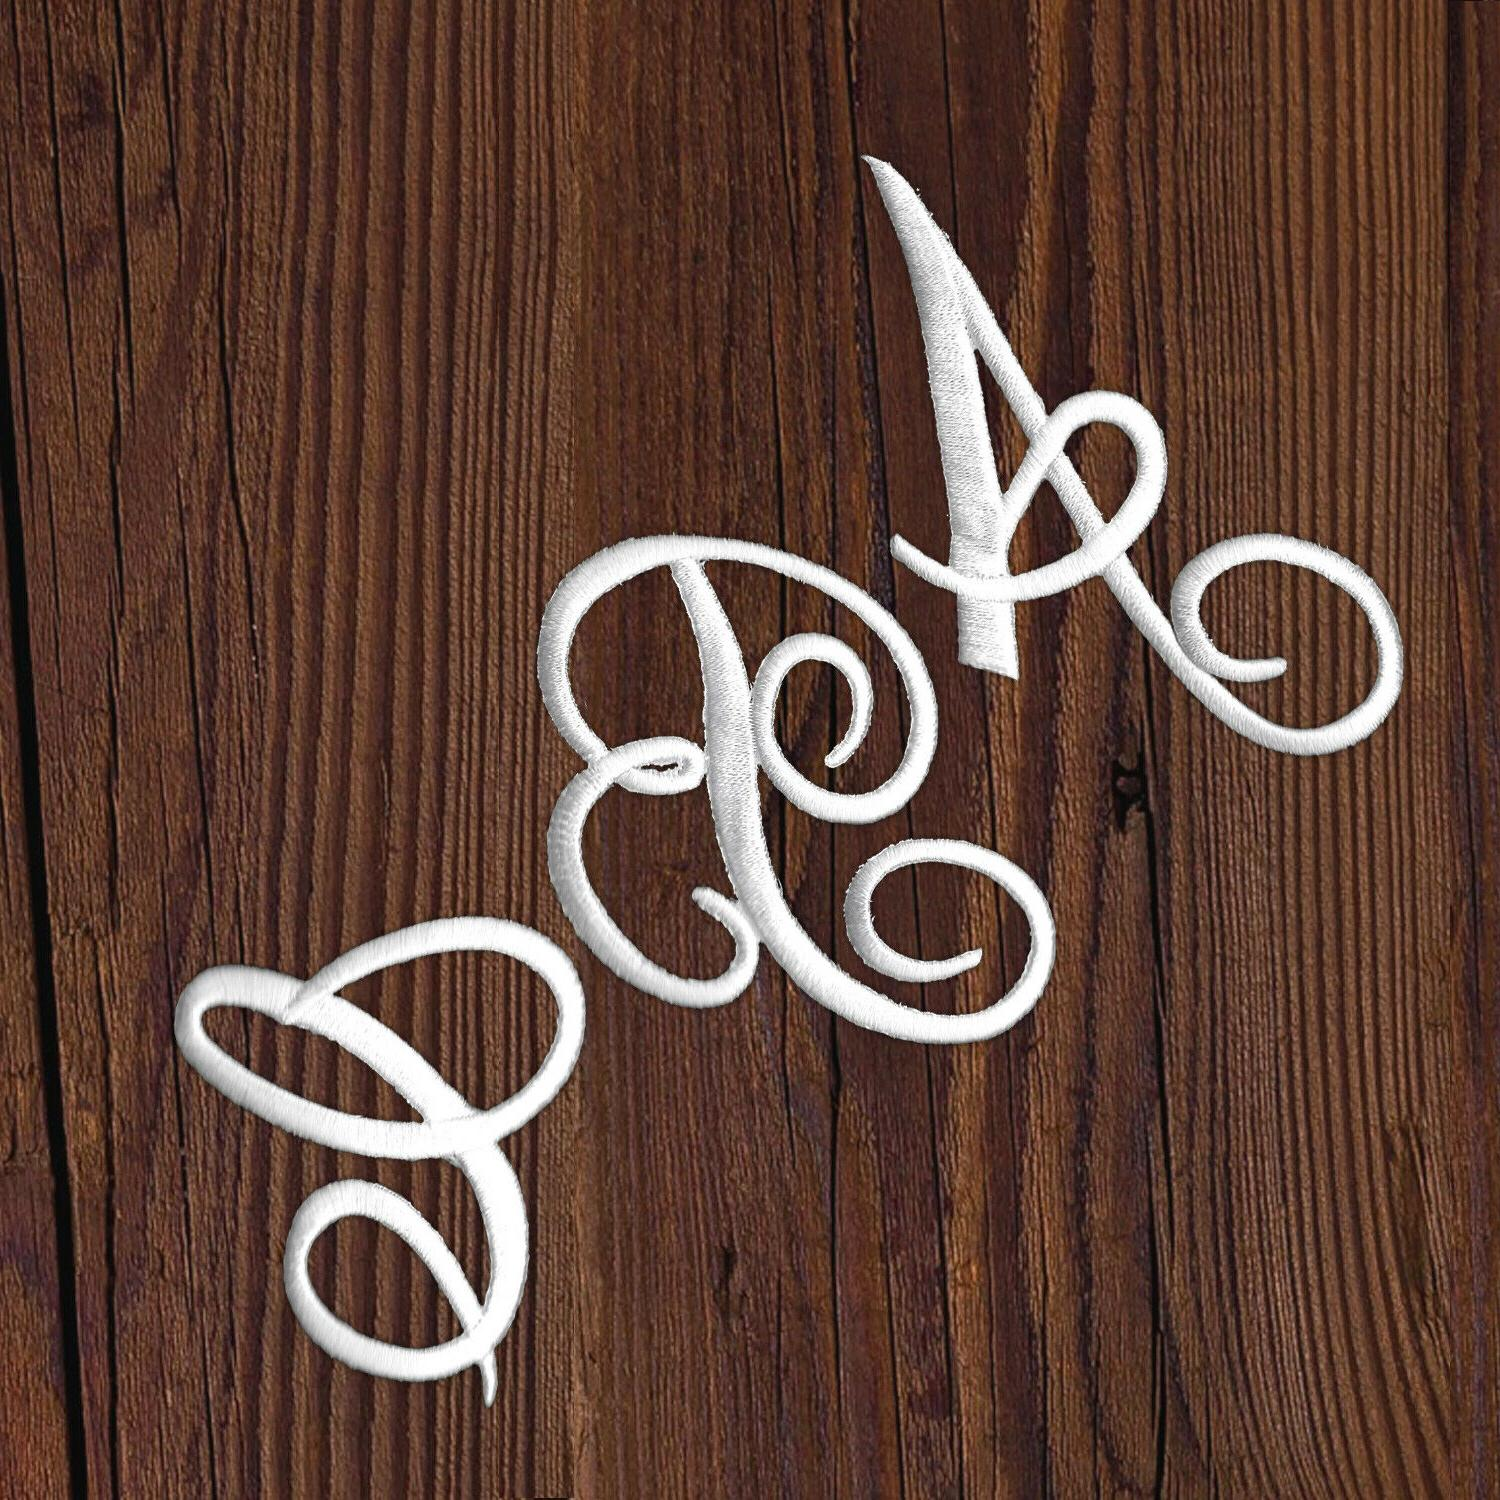 Iron On Script Letter Patches, Embroidered Monogram Letters,